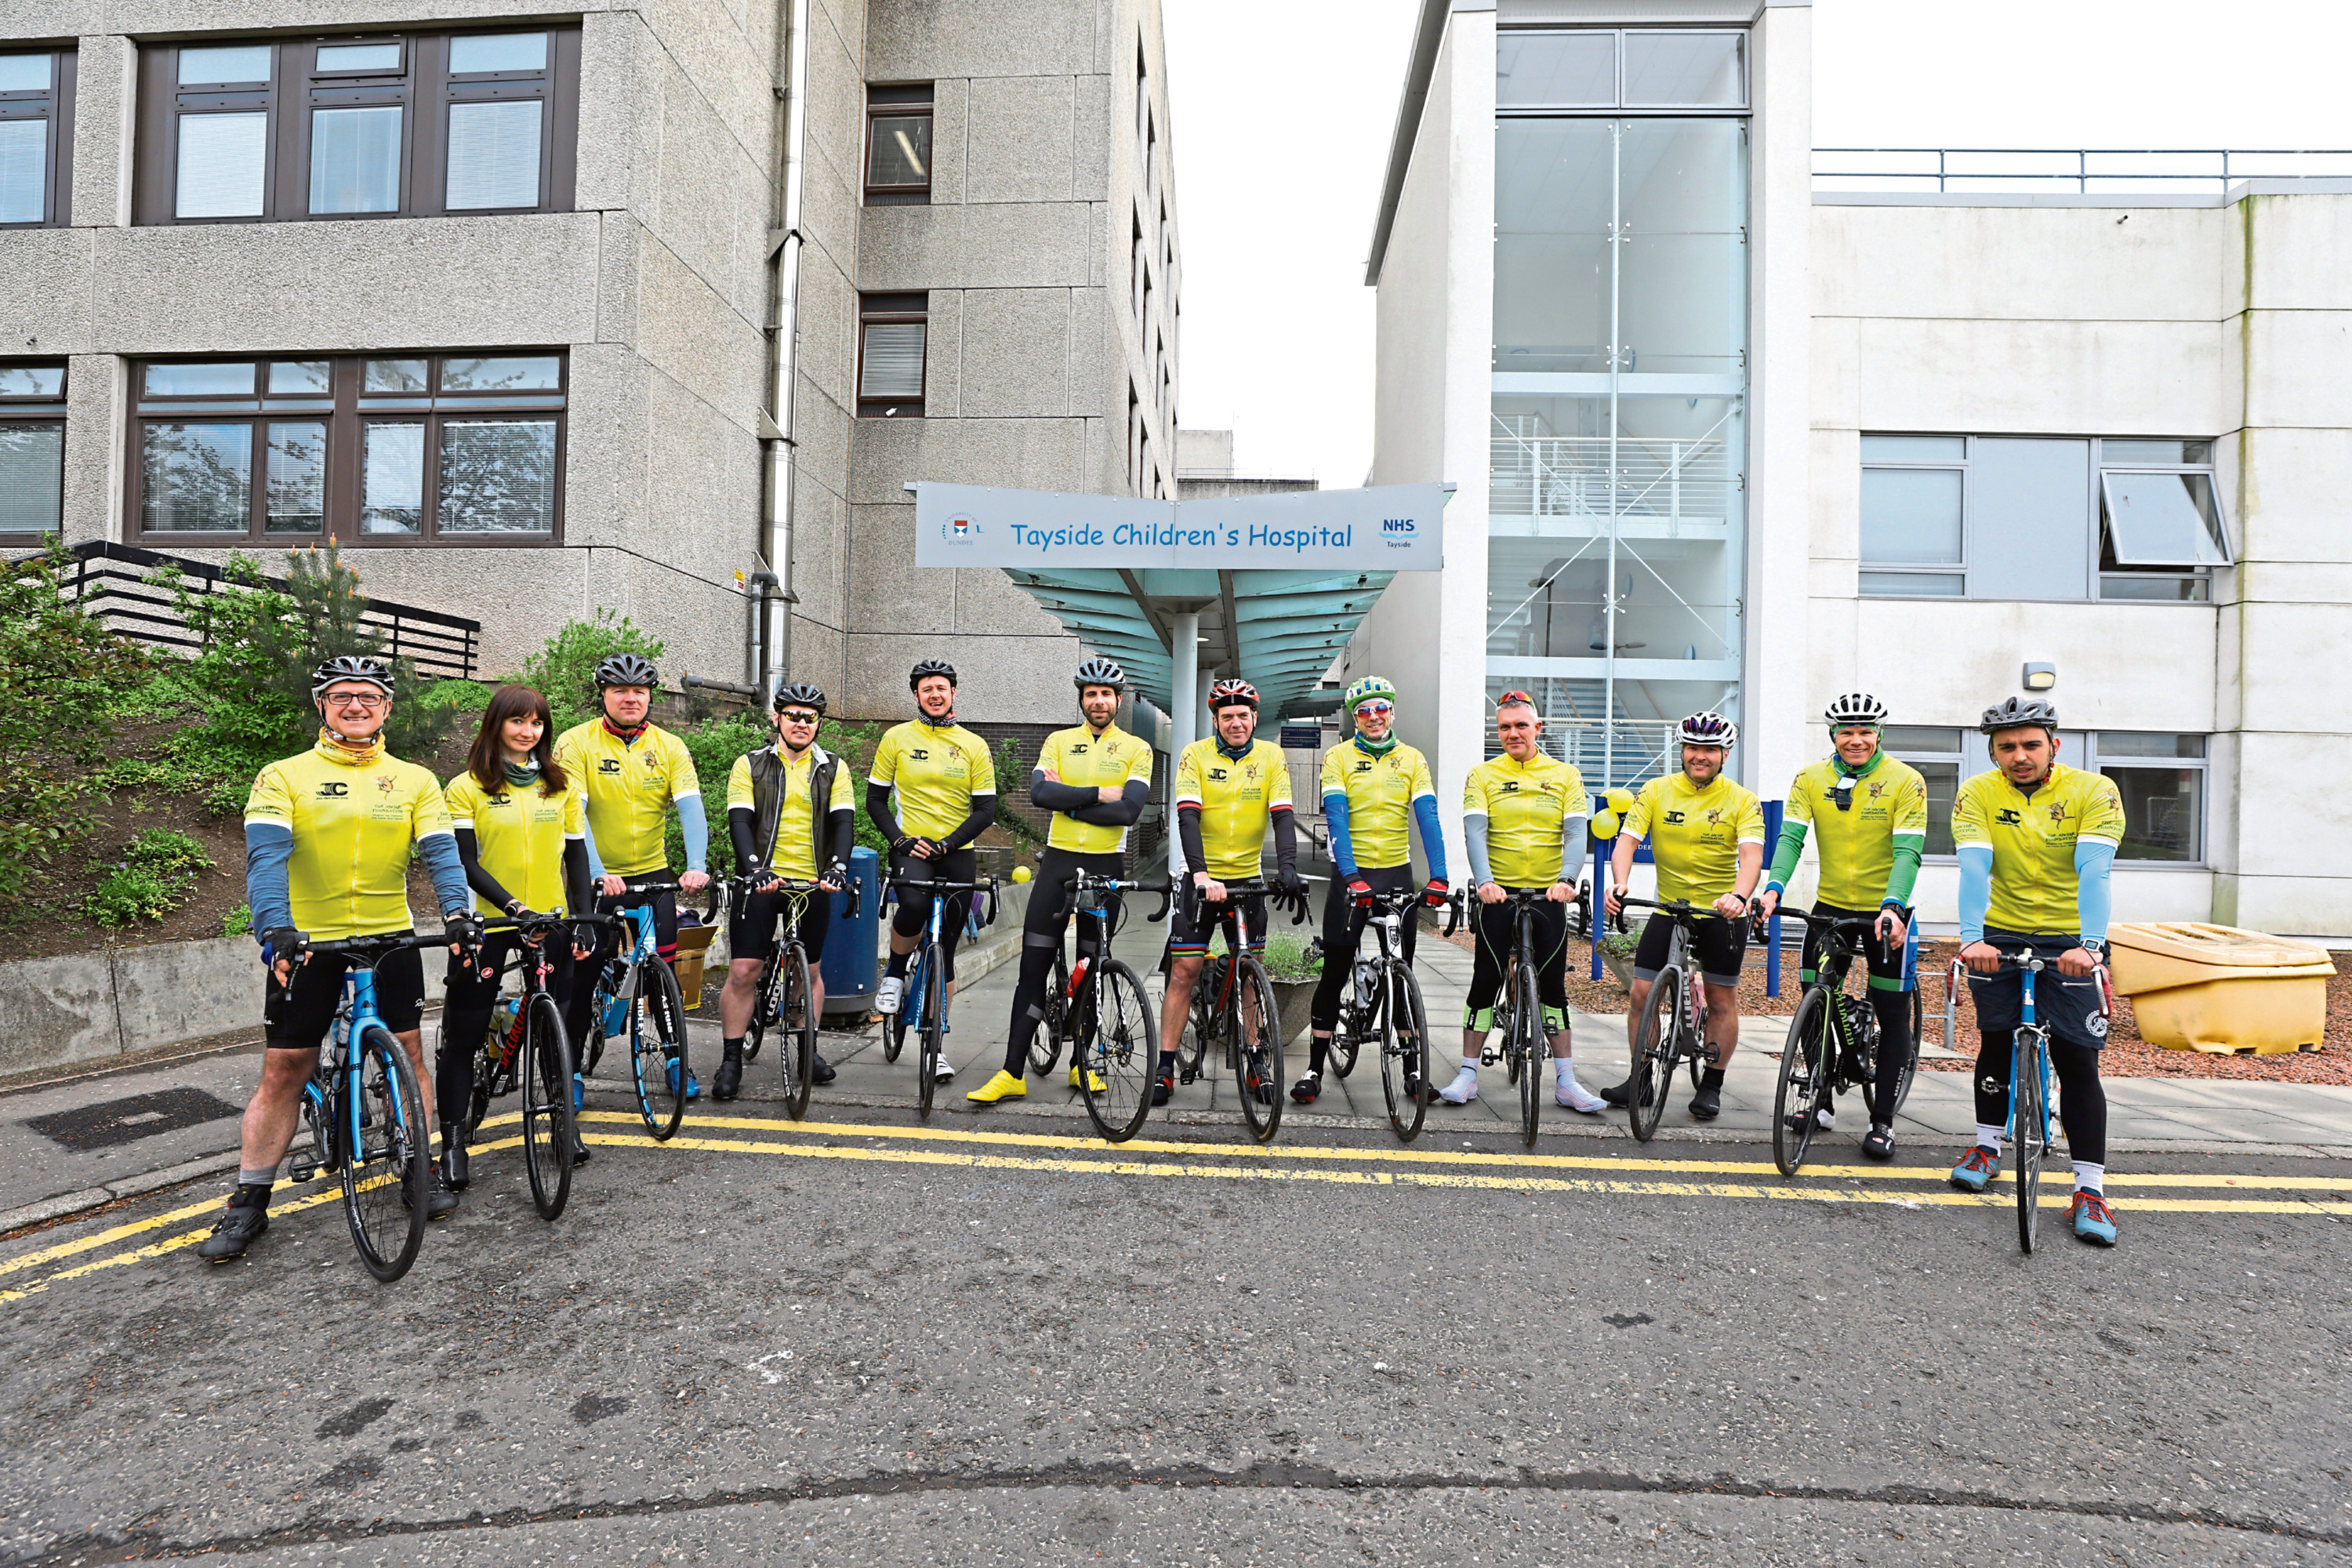 The cyclists lined up outside the Tayside Children's Hospital, with Mark Beaumont, sixth from left, leading the way.